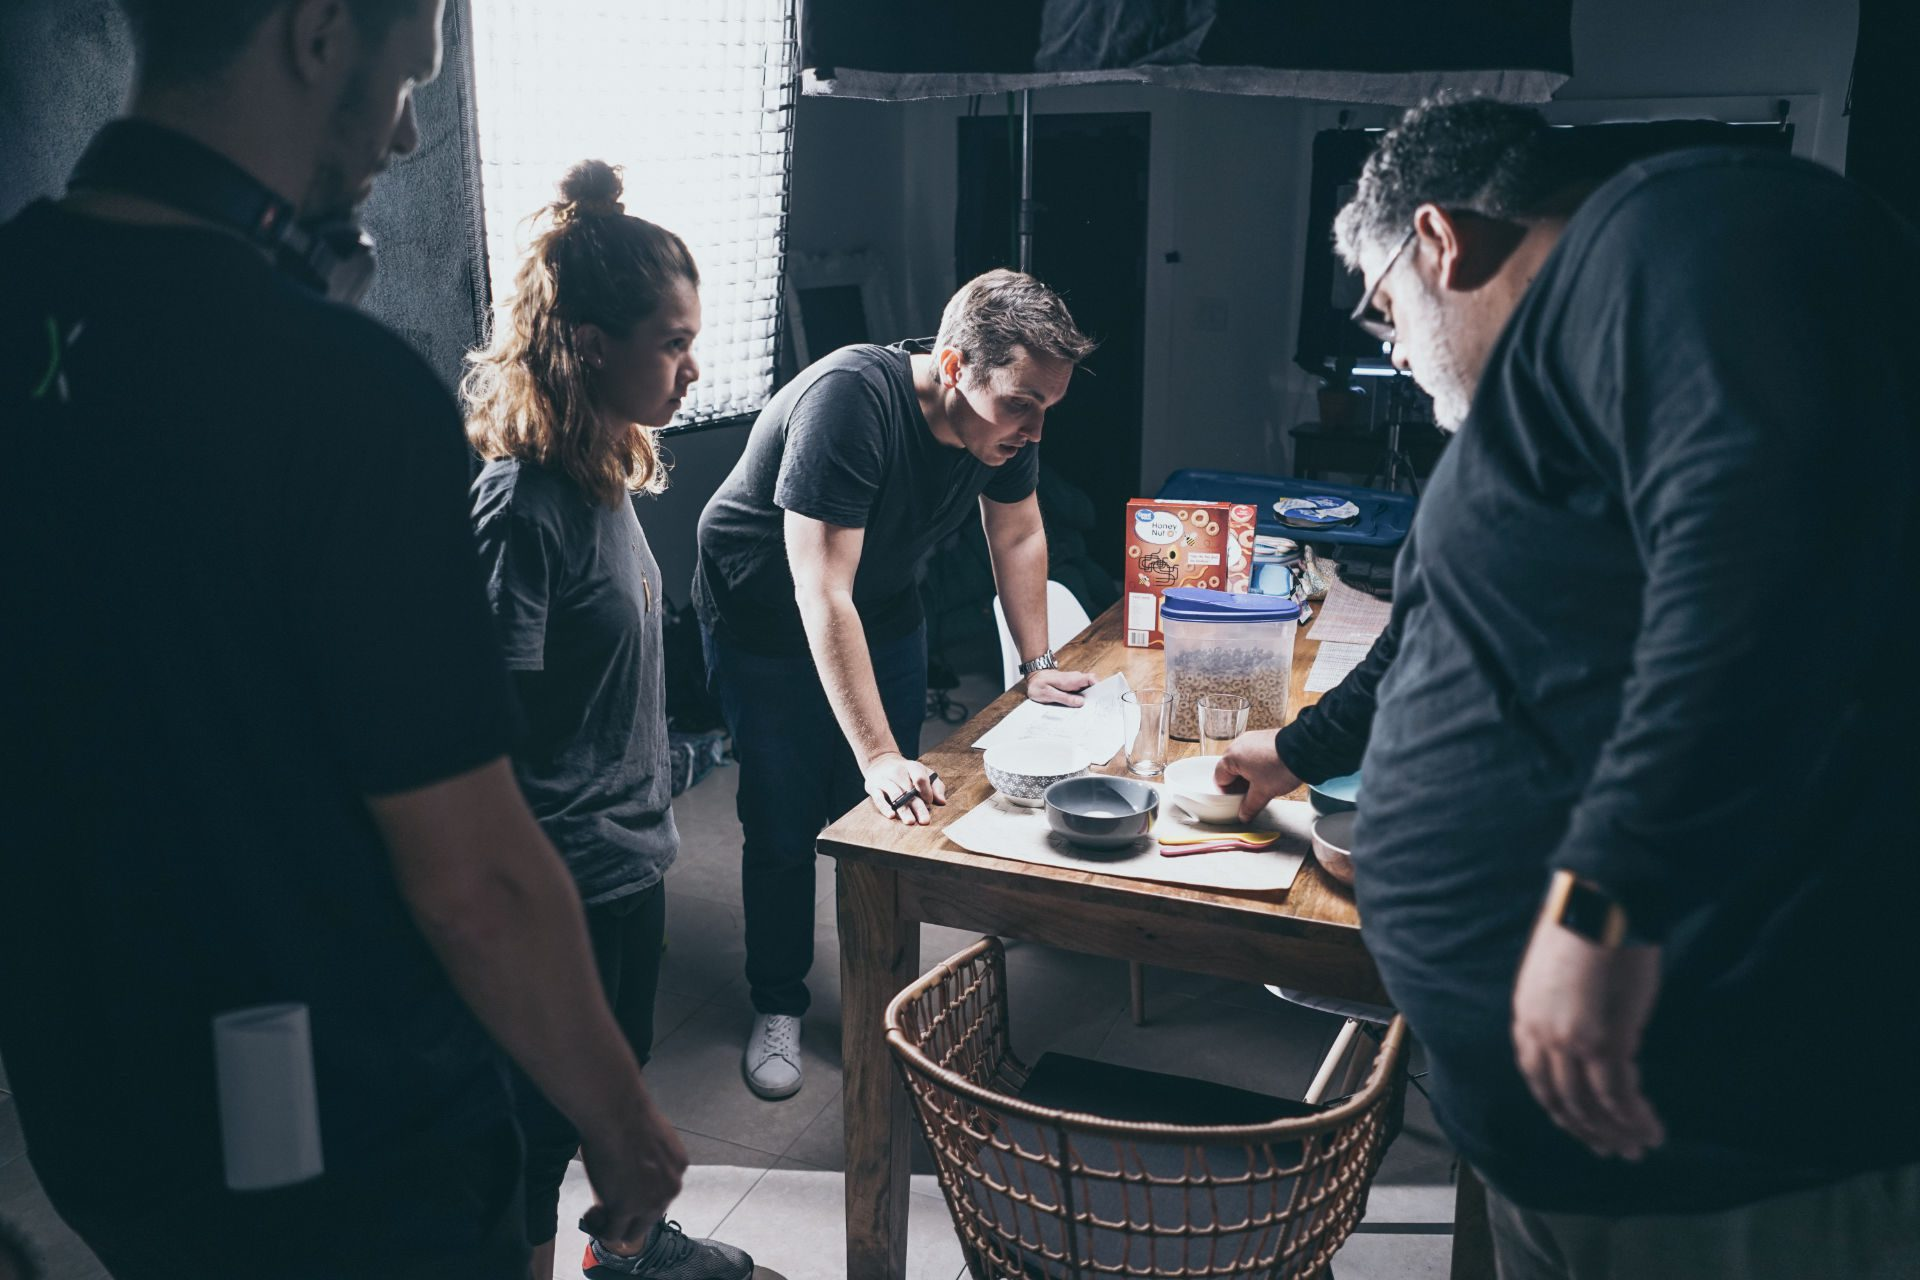 Brady - New Morning Routine - Artex Productions - Best Commercial Video Production Company in Miami